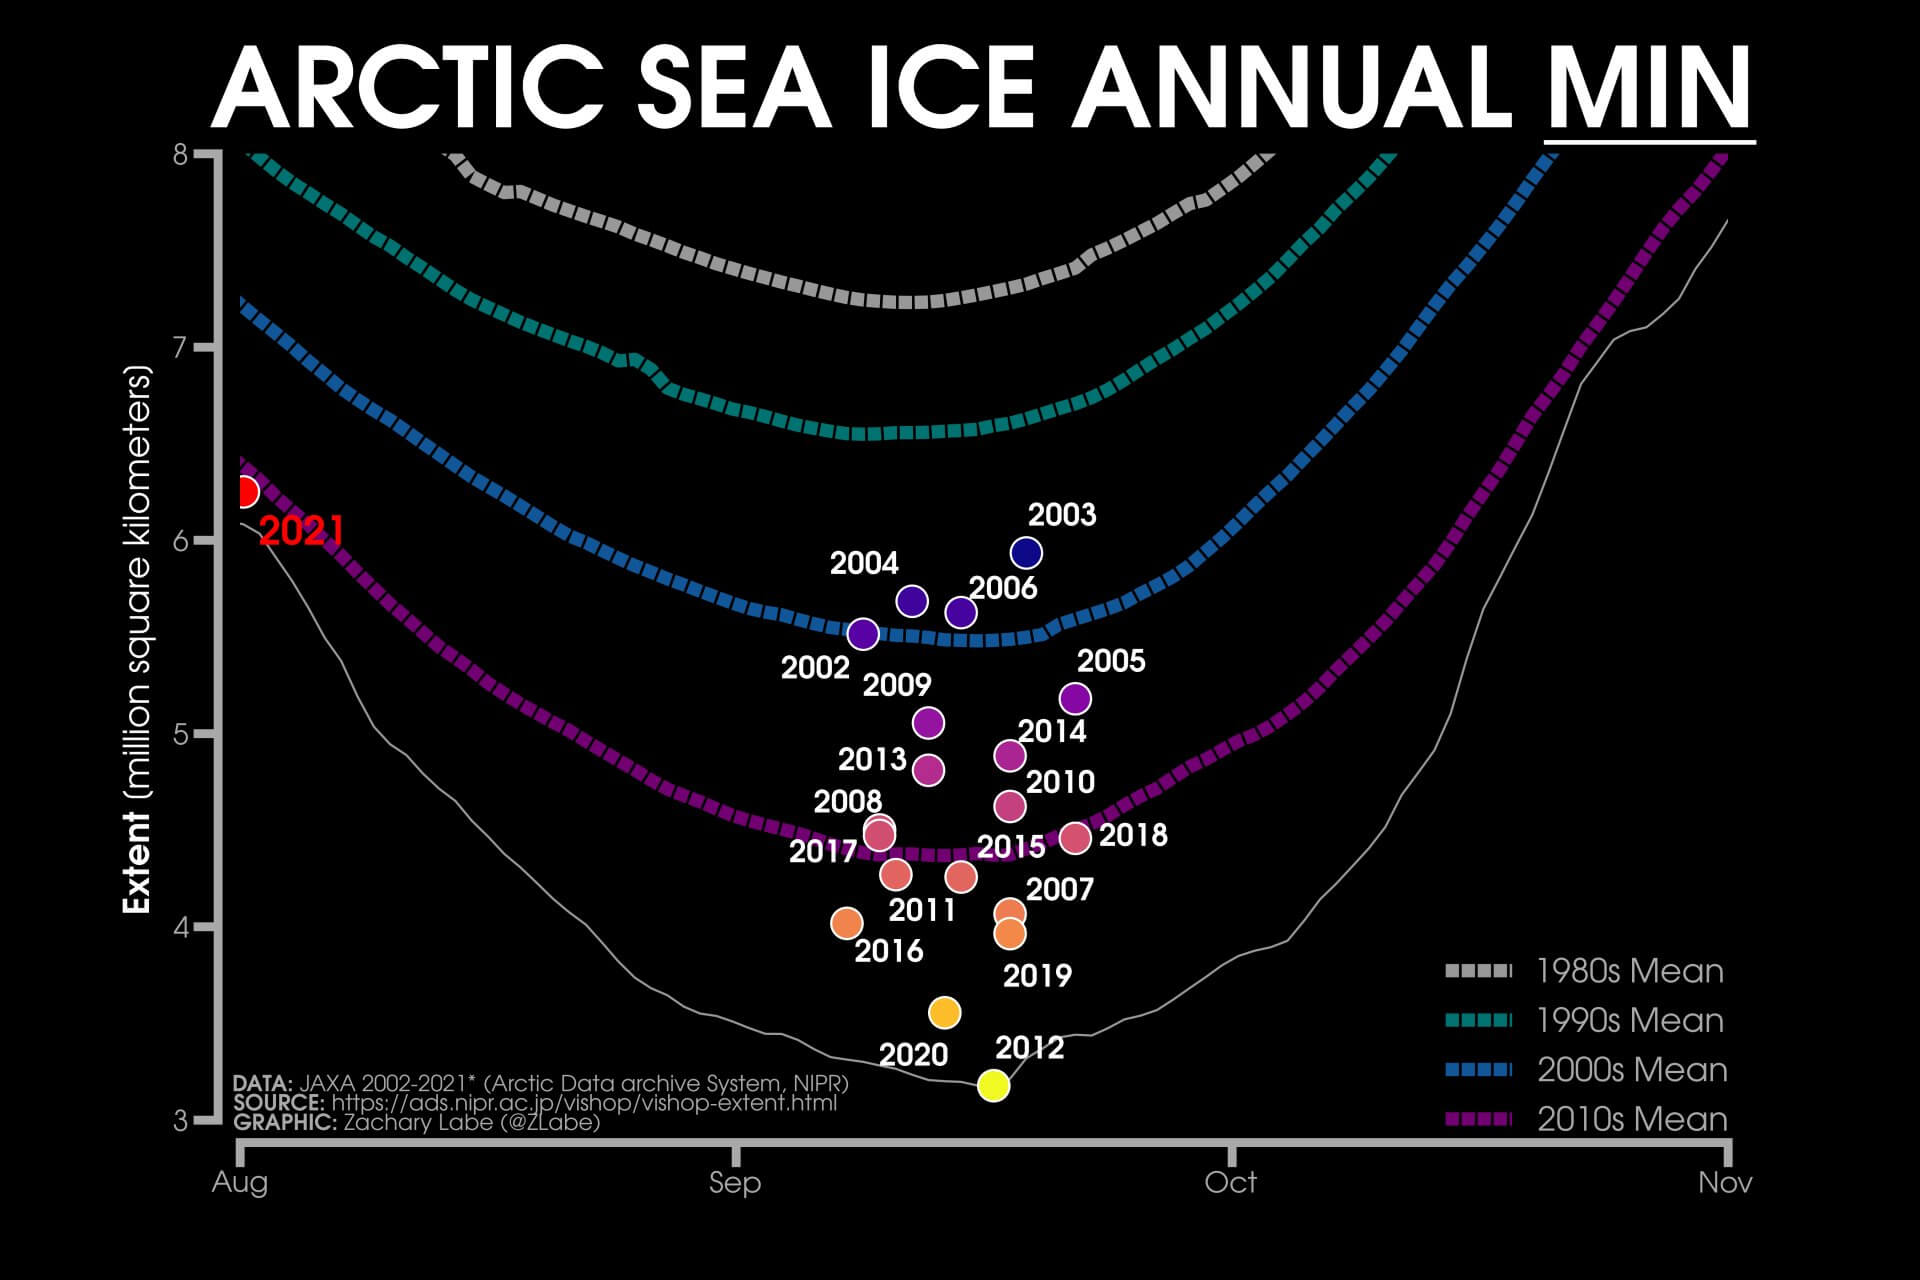 arctic-sea-ice-minimum-extent-graph-by-years